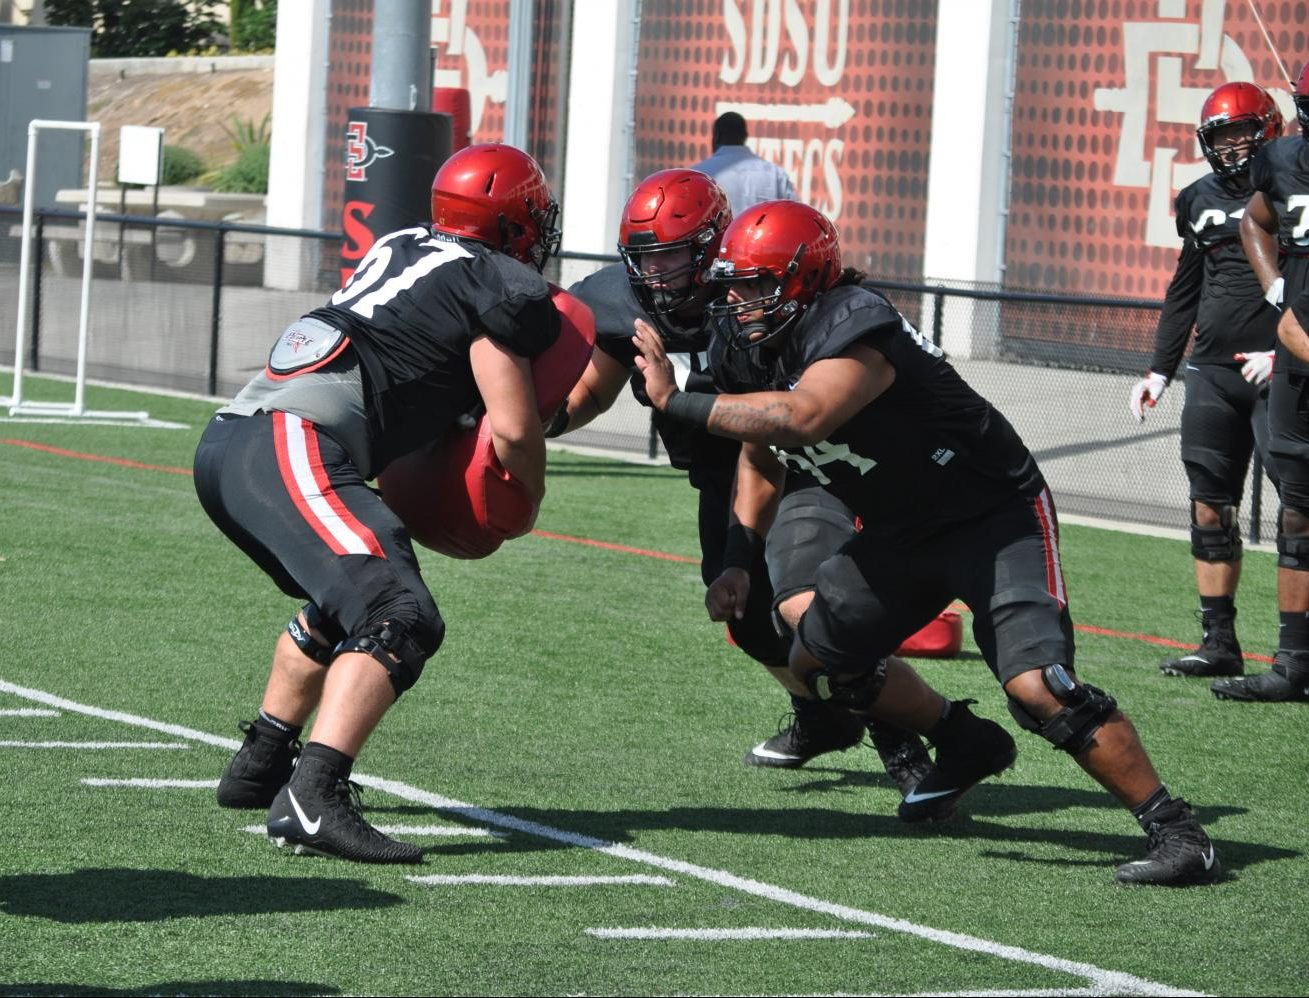 San Diego State offensive linemen work on a drill during a fall camp practice on Aug. 7 at SDSU Practice Field.